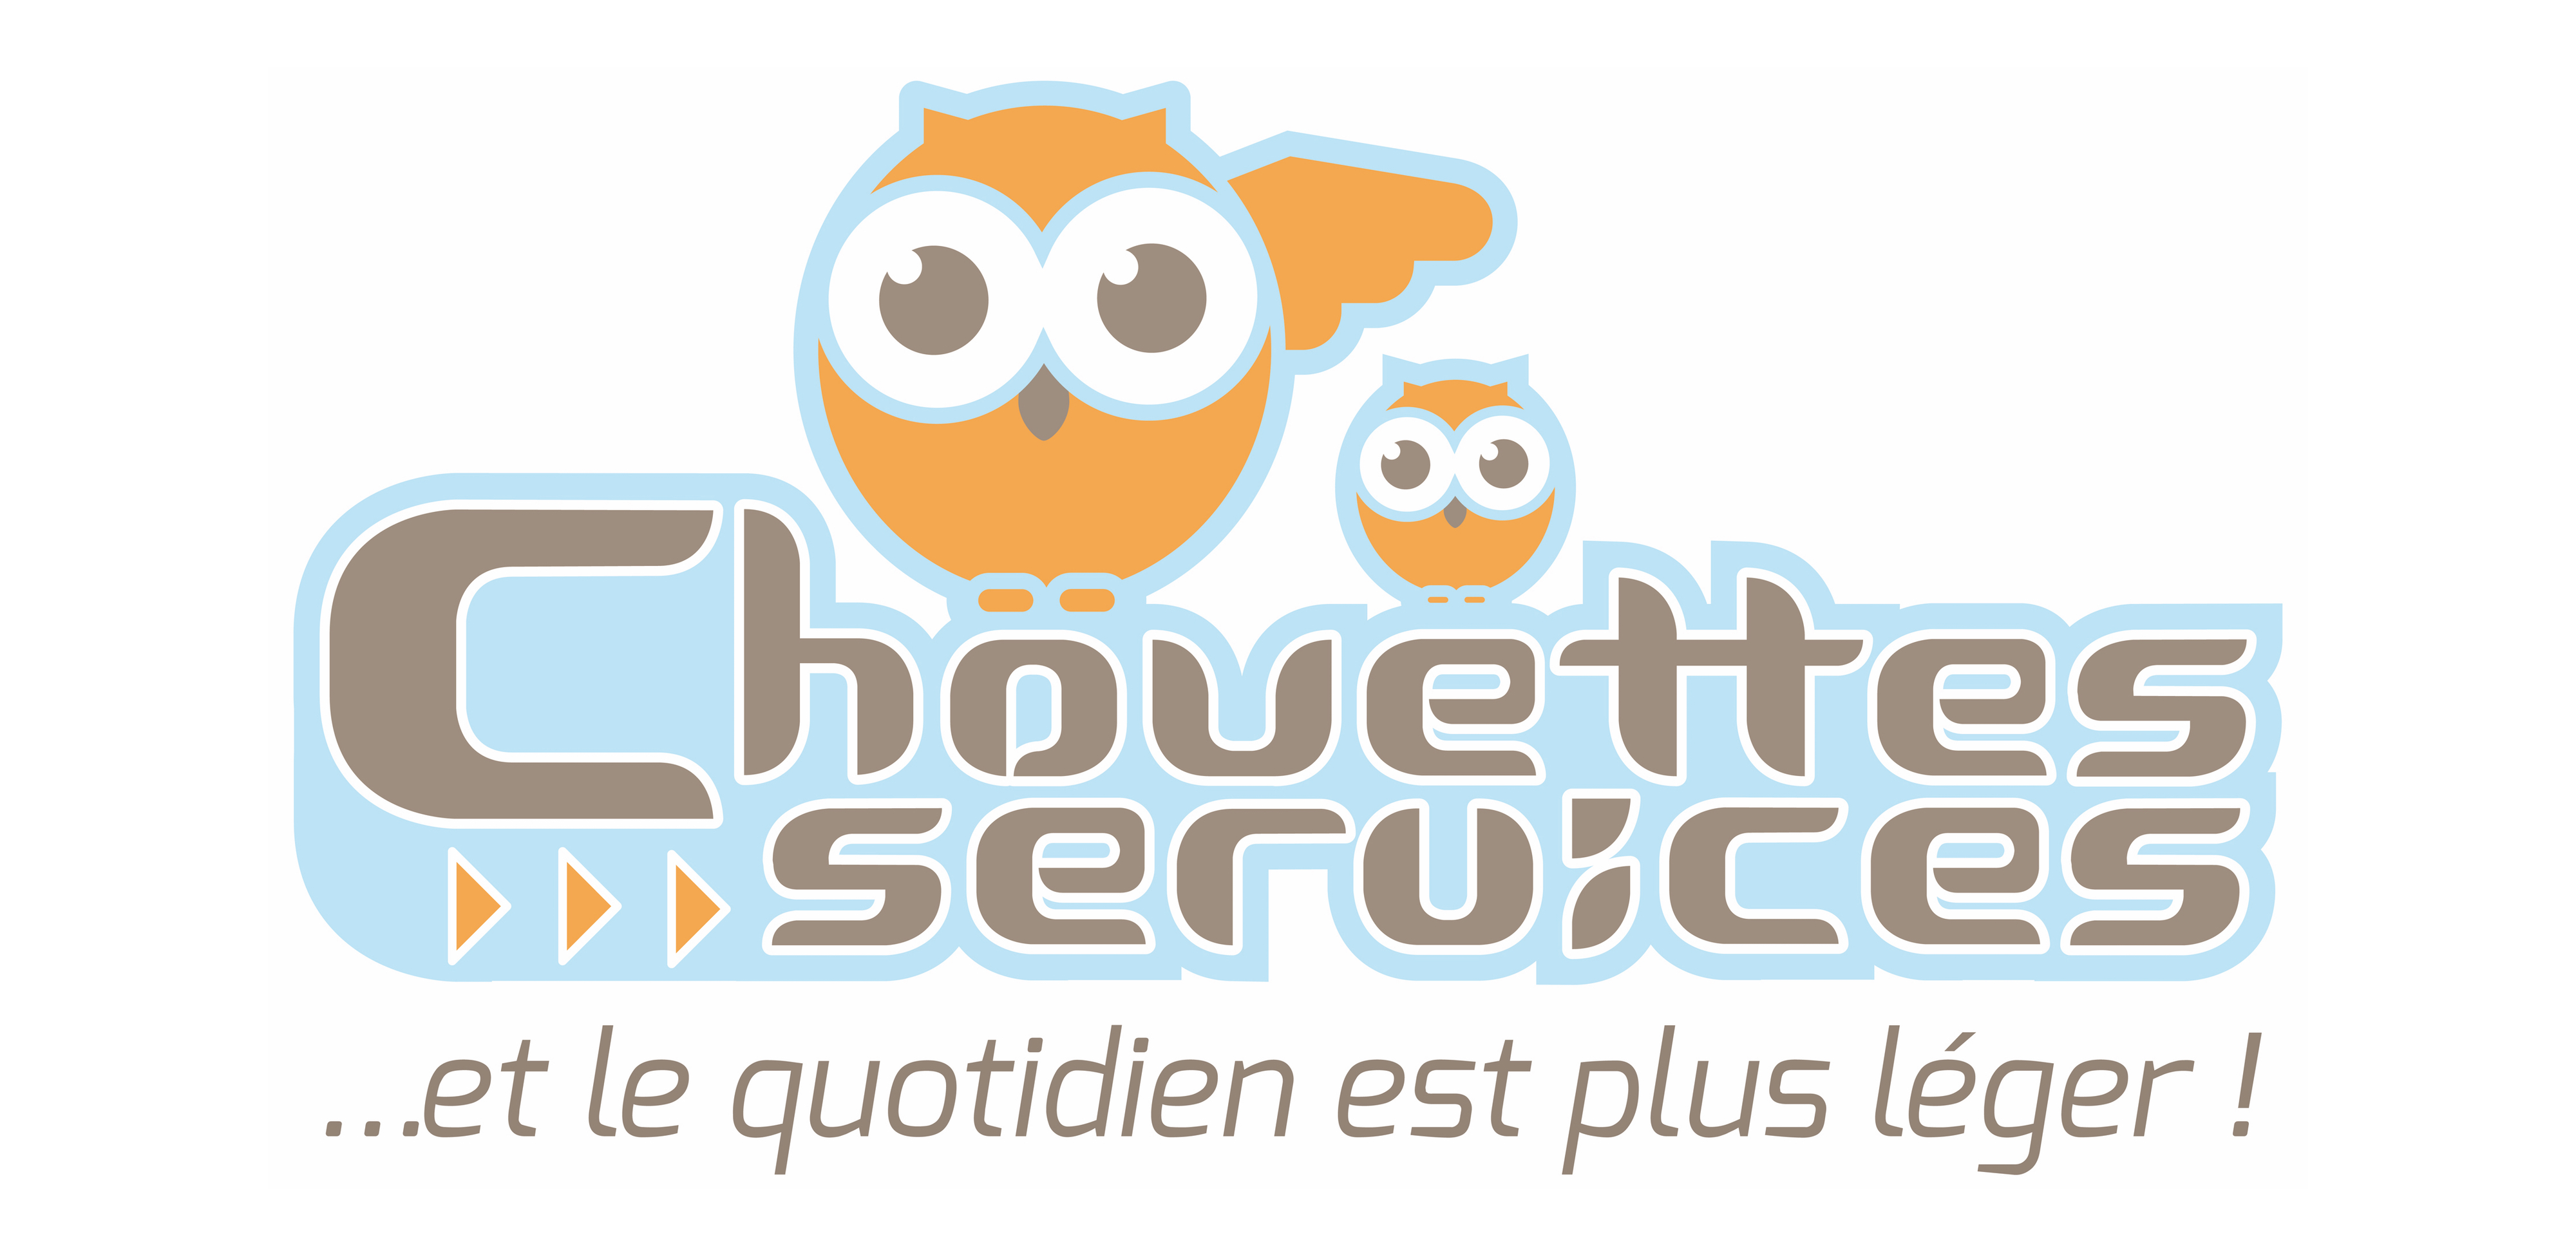 Chouettes Services